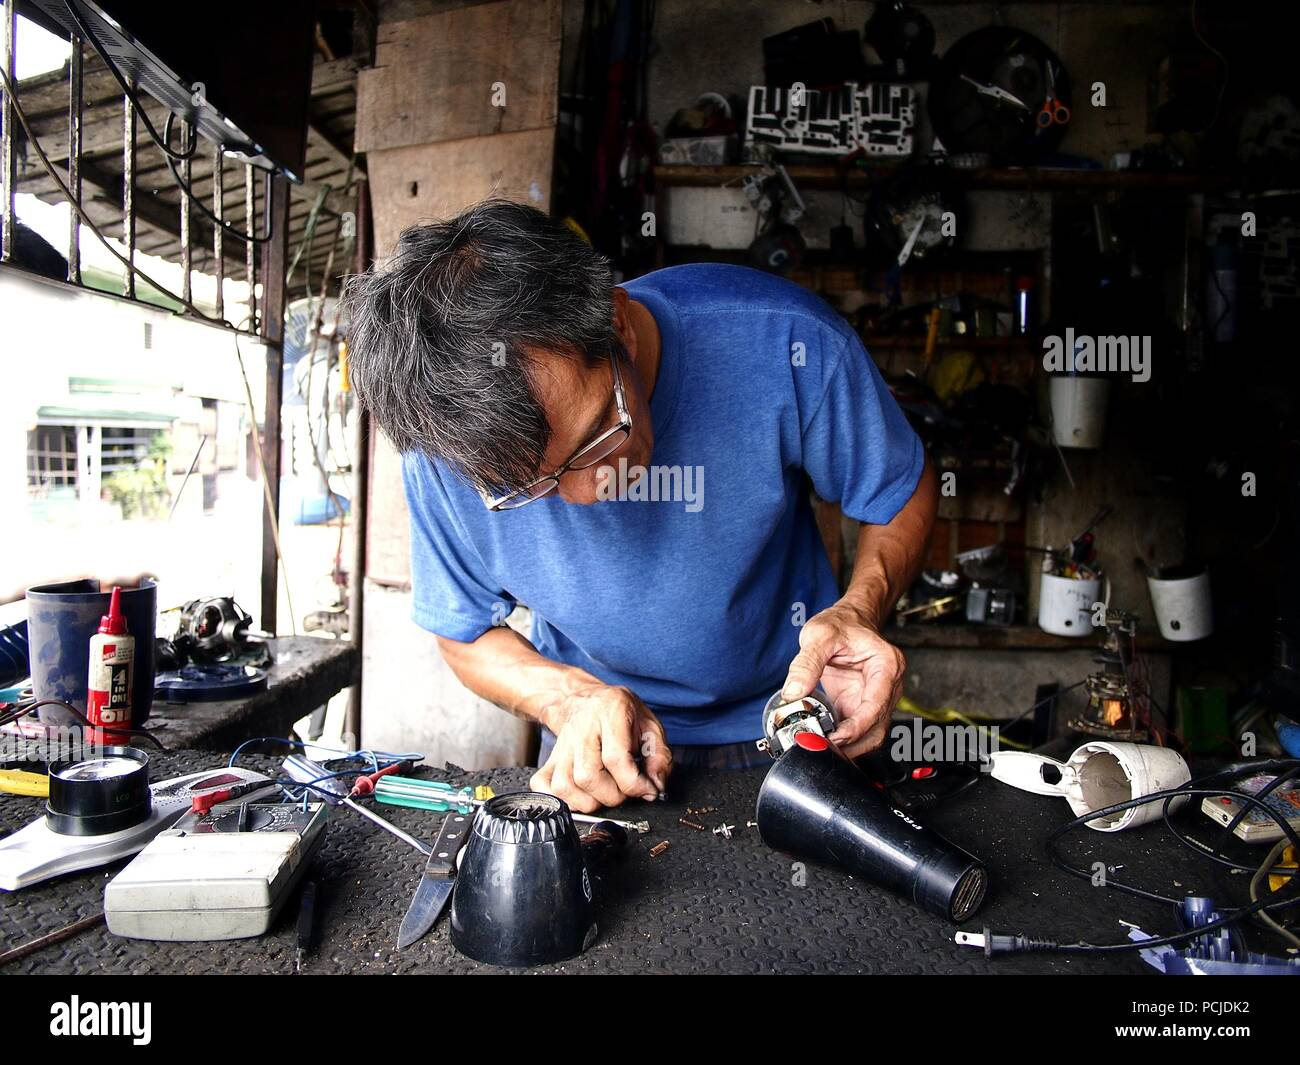 ANTIPOLO CITY, PHILIPPINES - AUGUST 1, 2018: A electrician fixes an electronic household item in his repair shop. - Stock Image